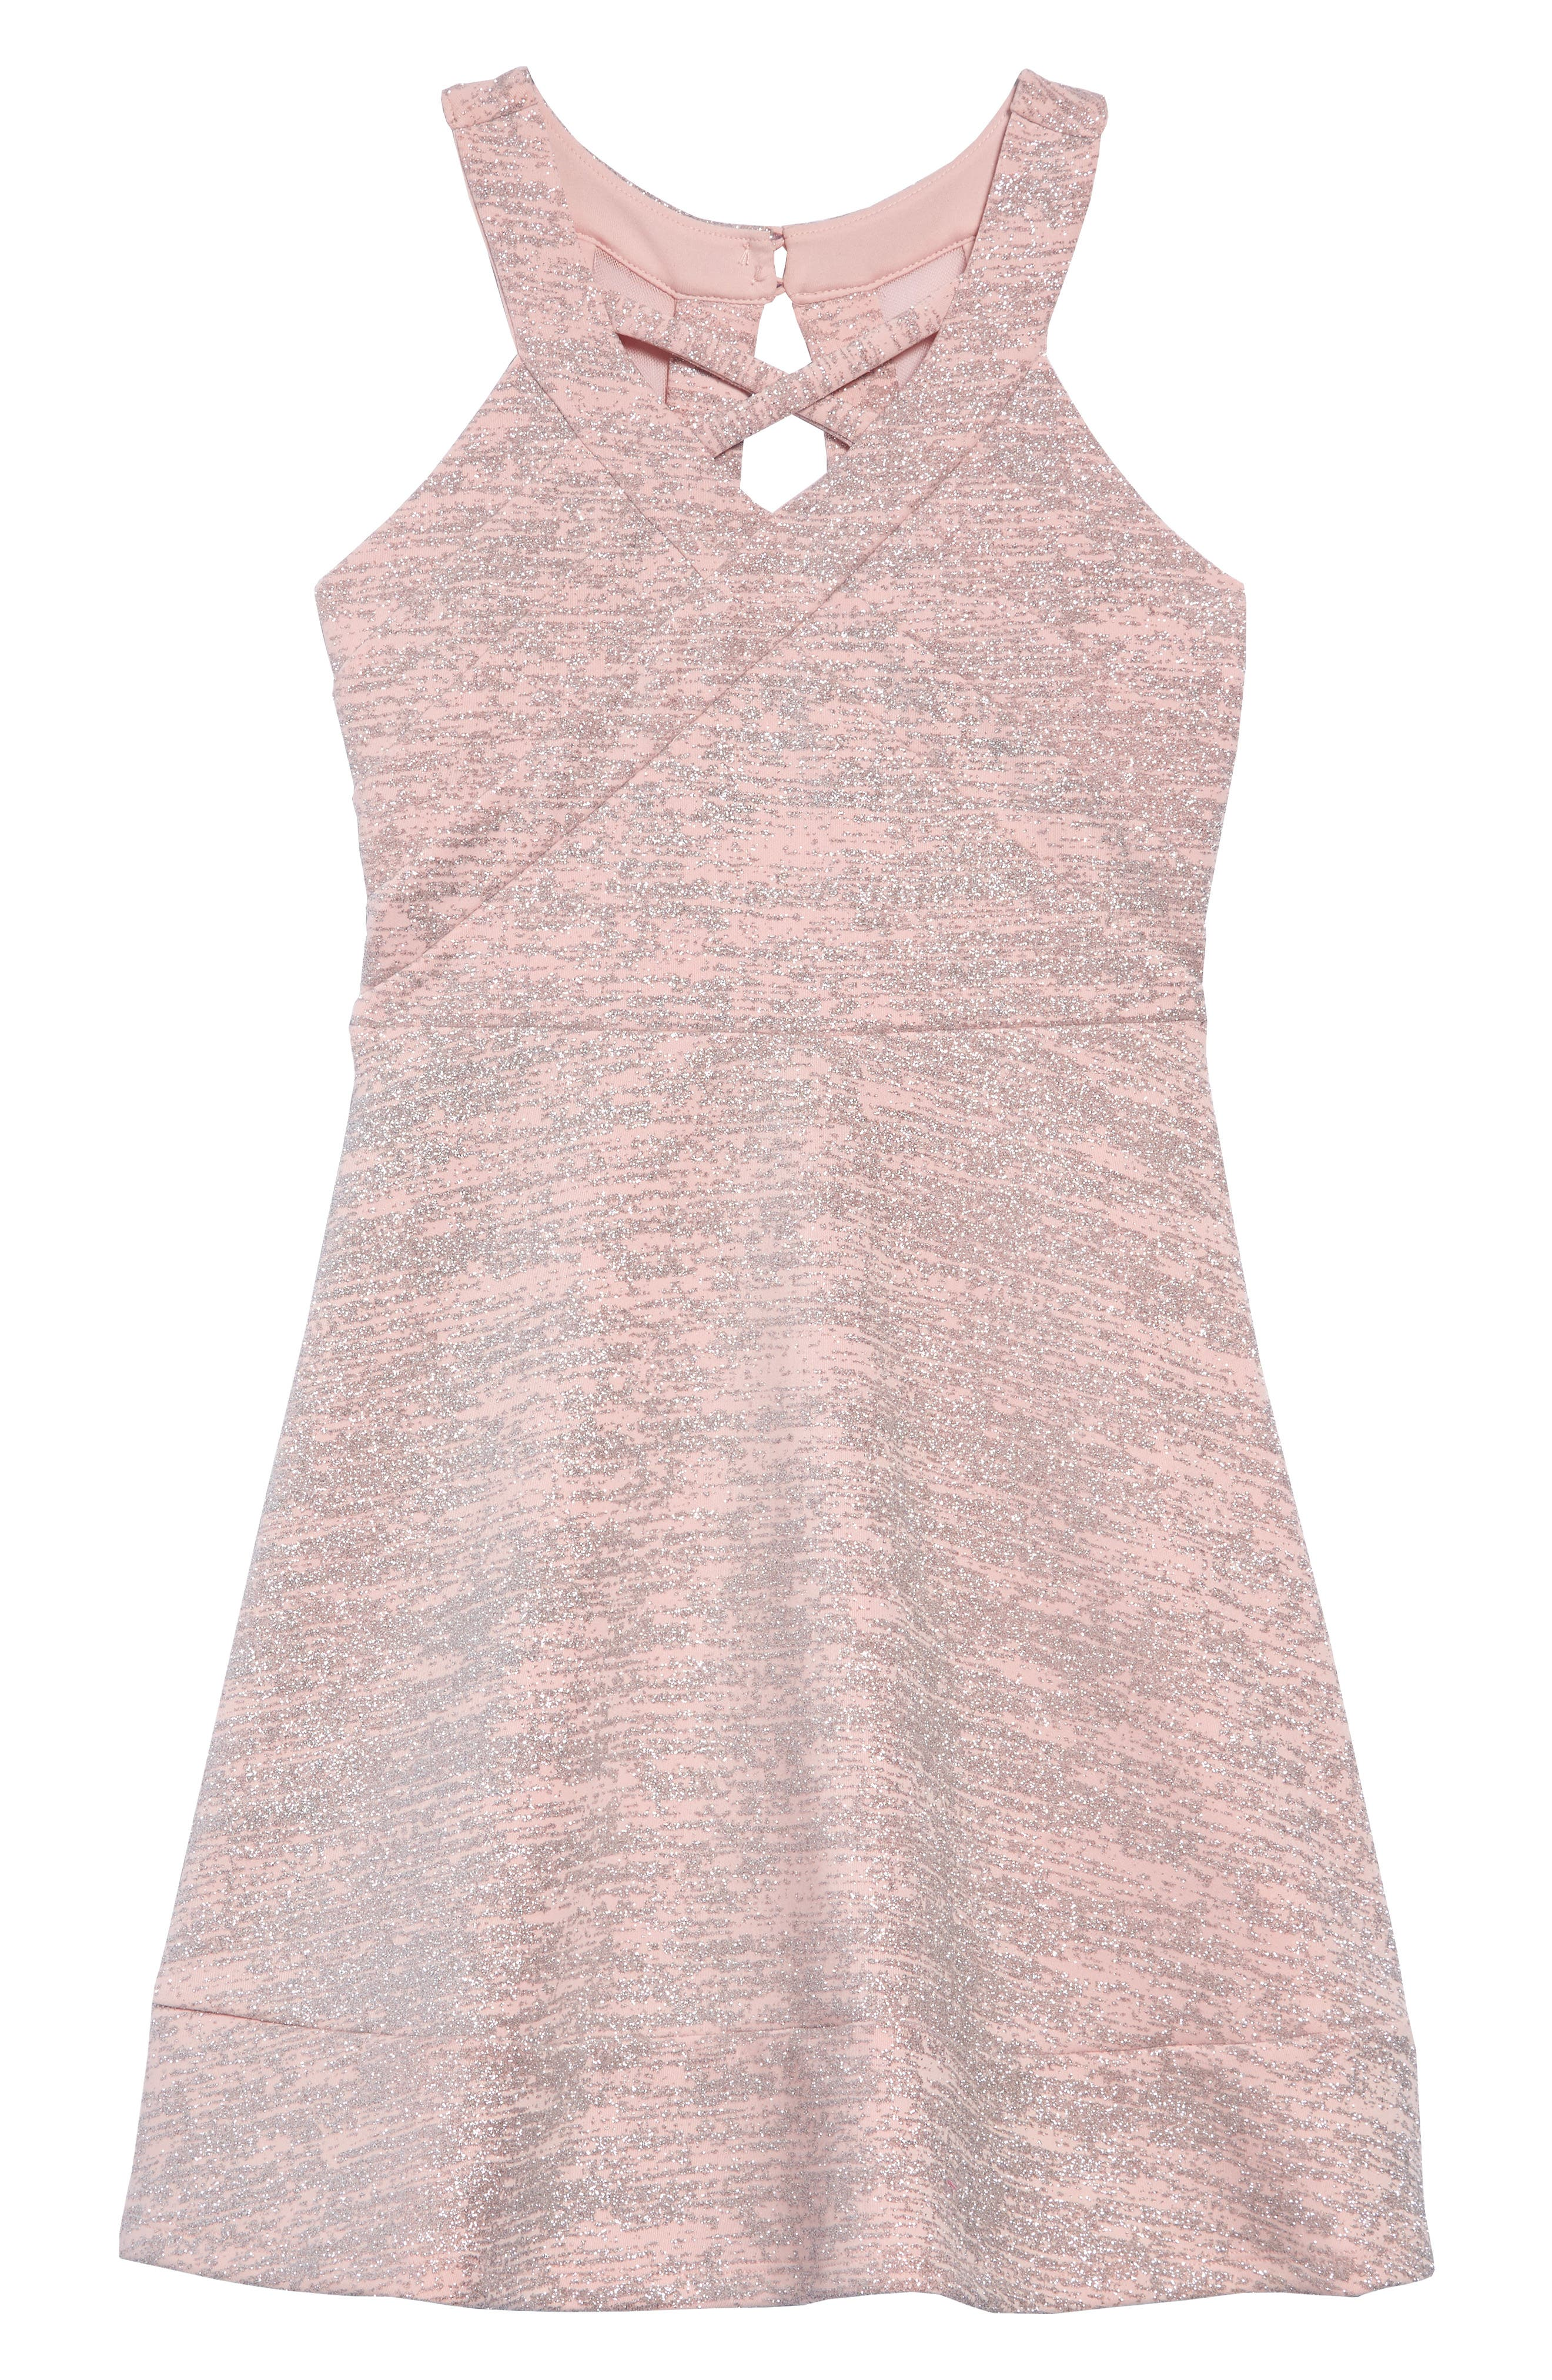 Image of Love, Nickie Lew Pink Glitter Dress